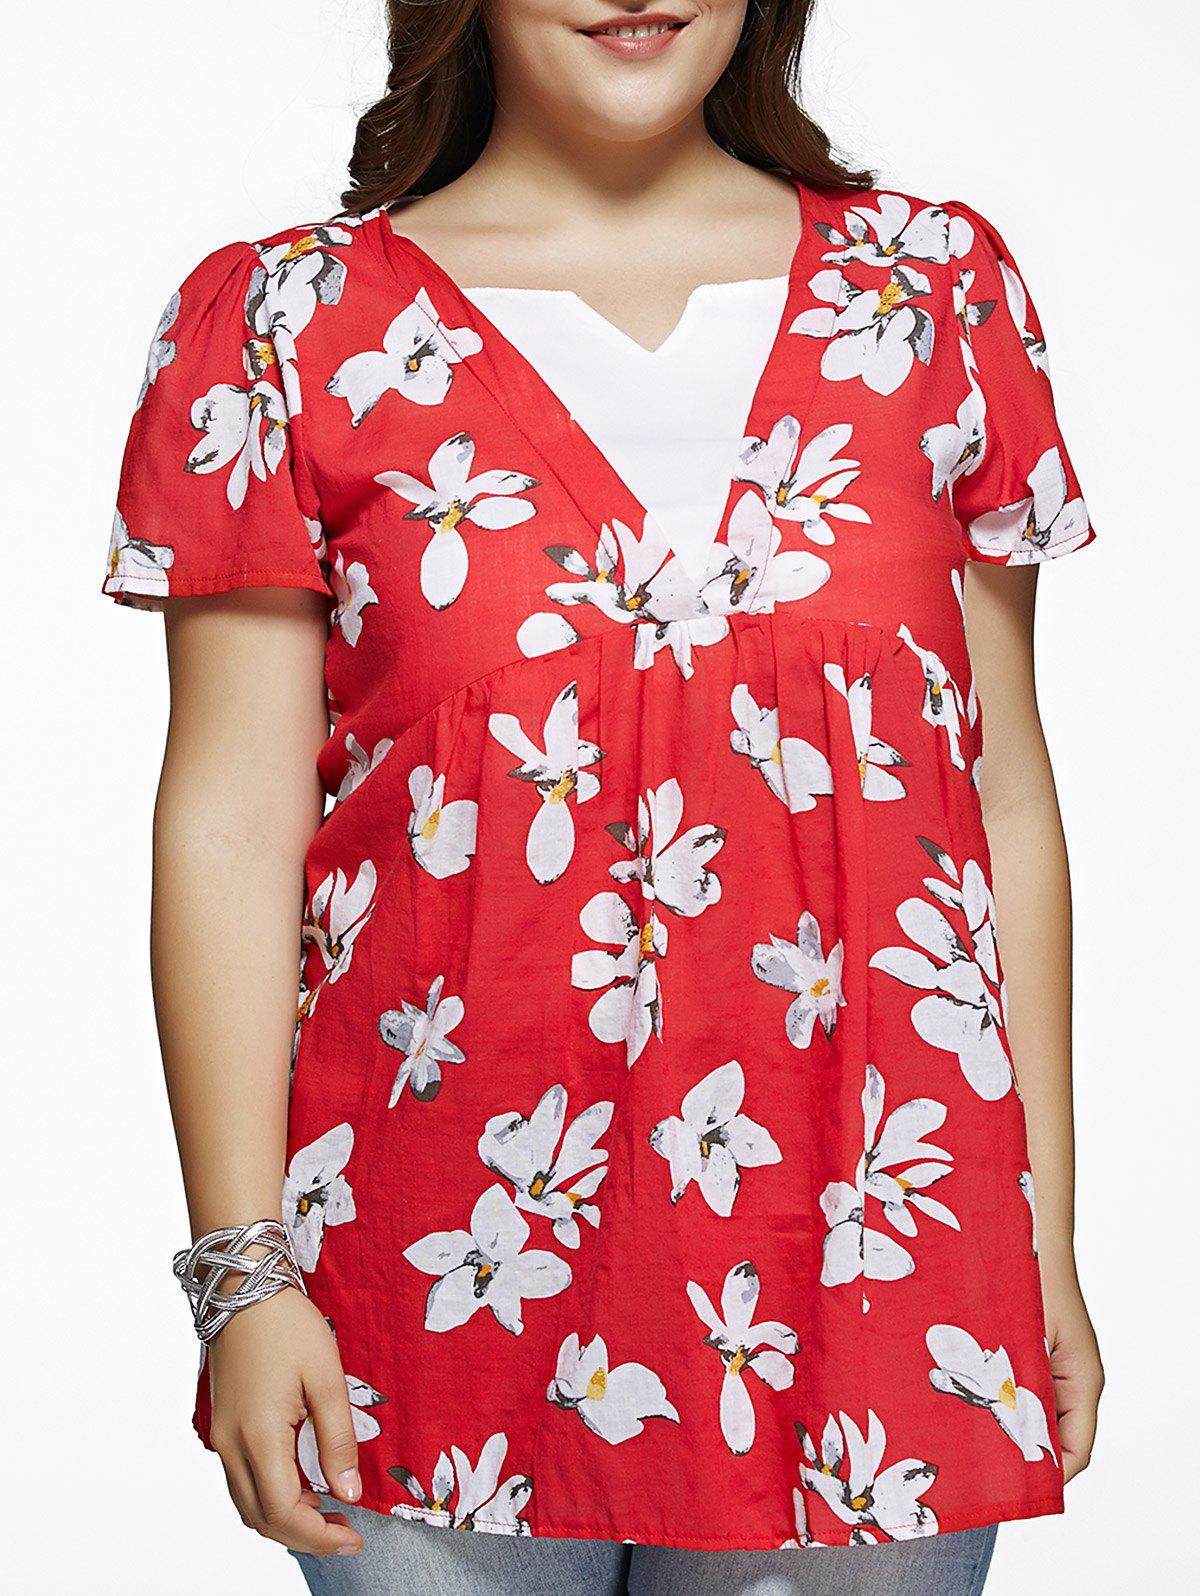 Store Refreshing Flower Print Spliced Plus Size Blouse